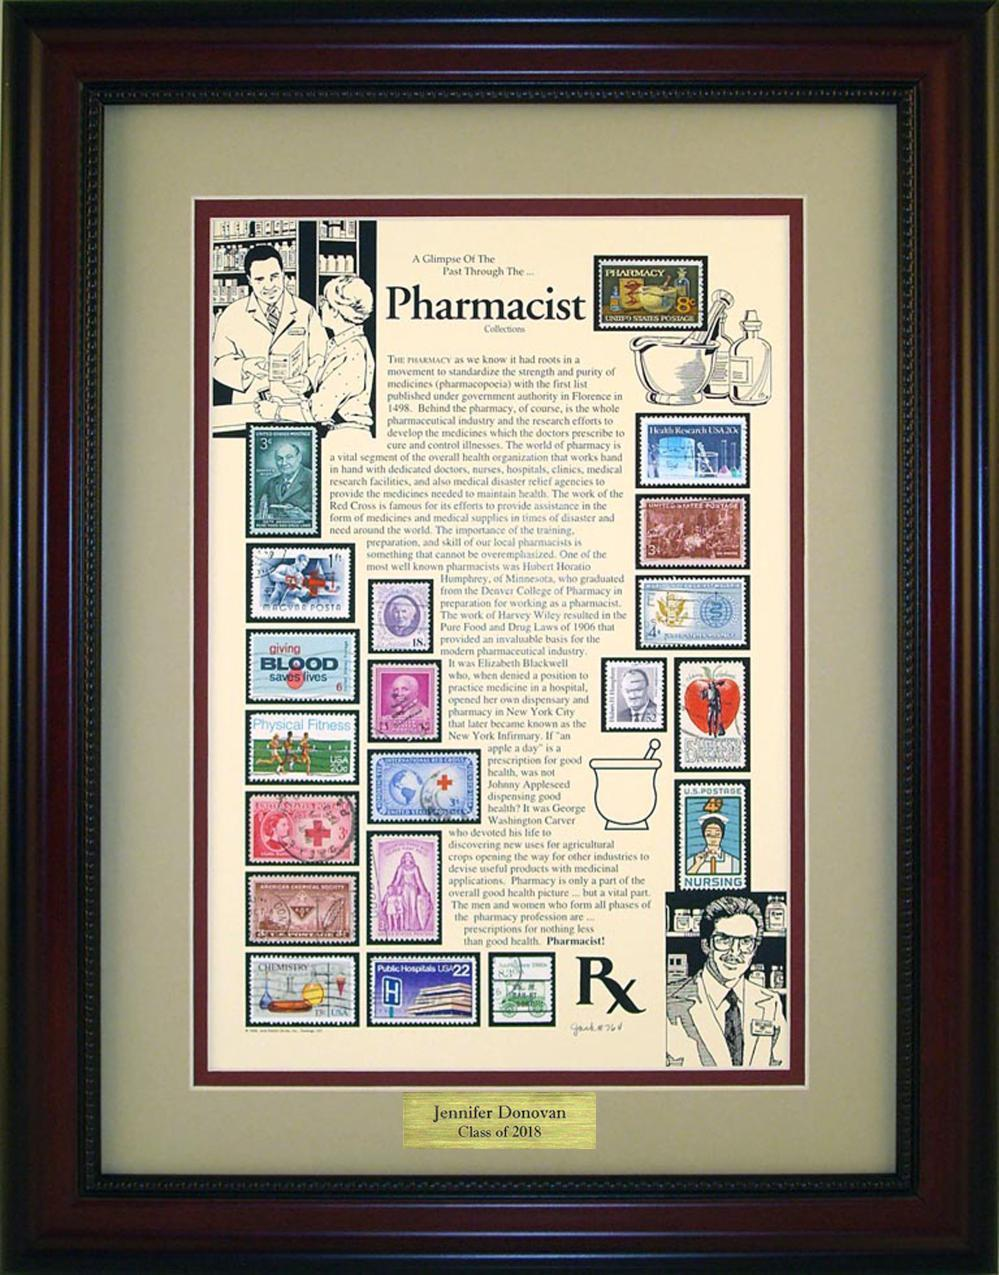 Pharmacist - Personalized Unique Framed Gift